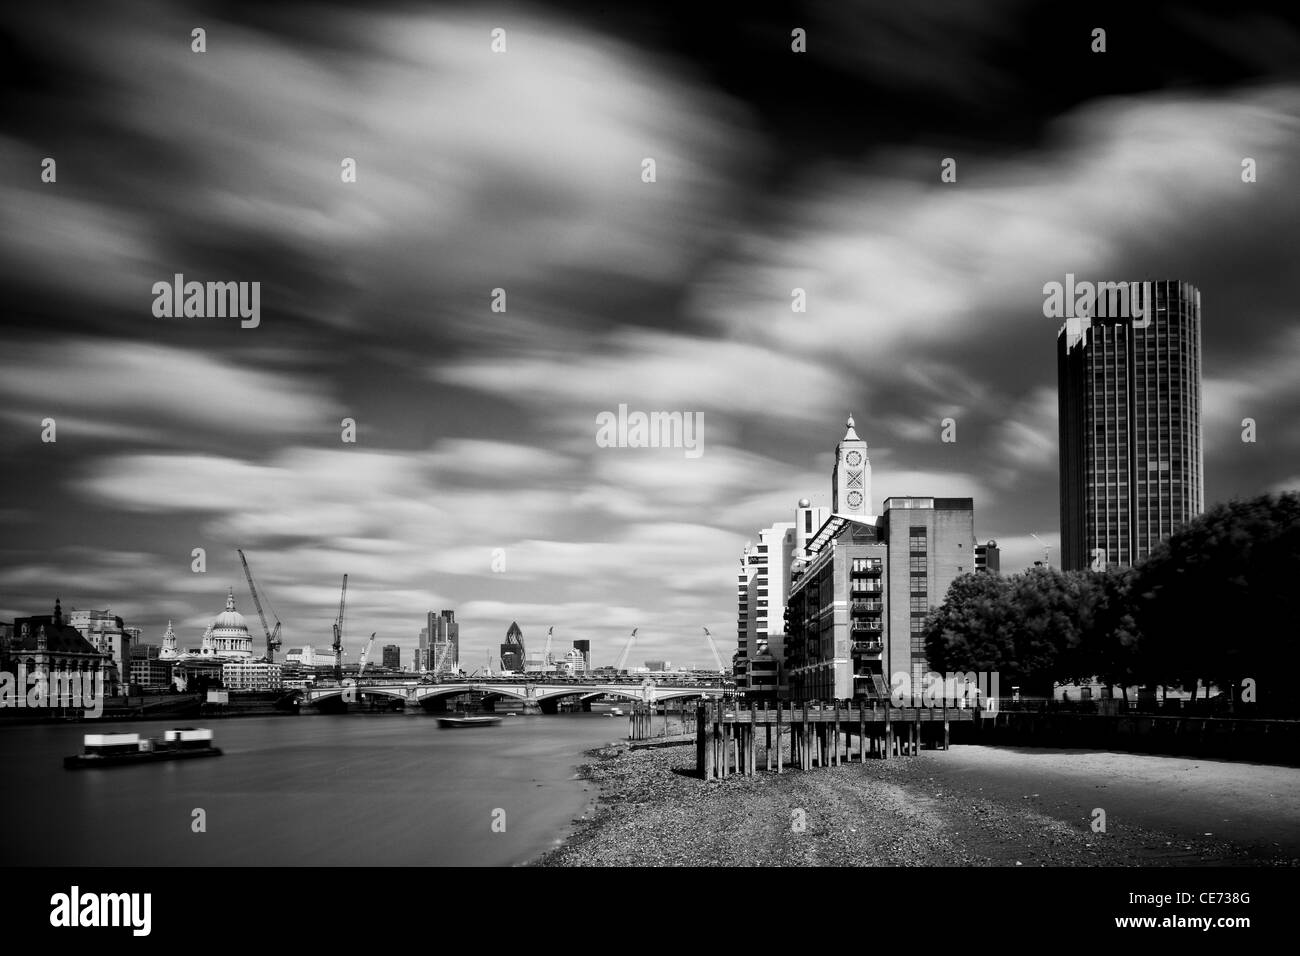 England, London, OXO Tower. The OXO Tower viewed from upstream of the River Thames - Stock Image